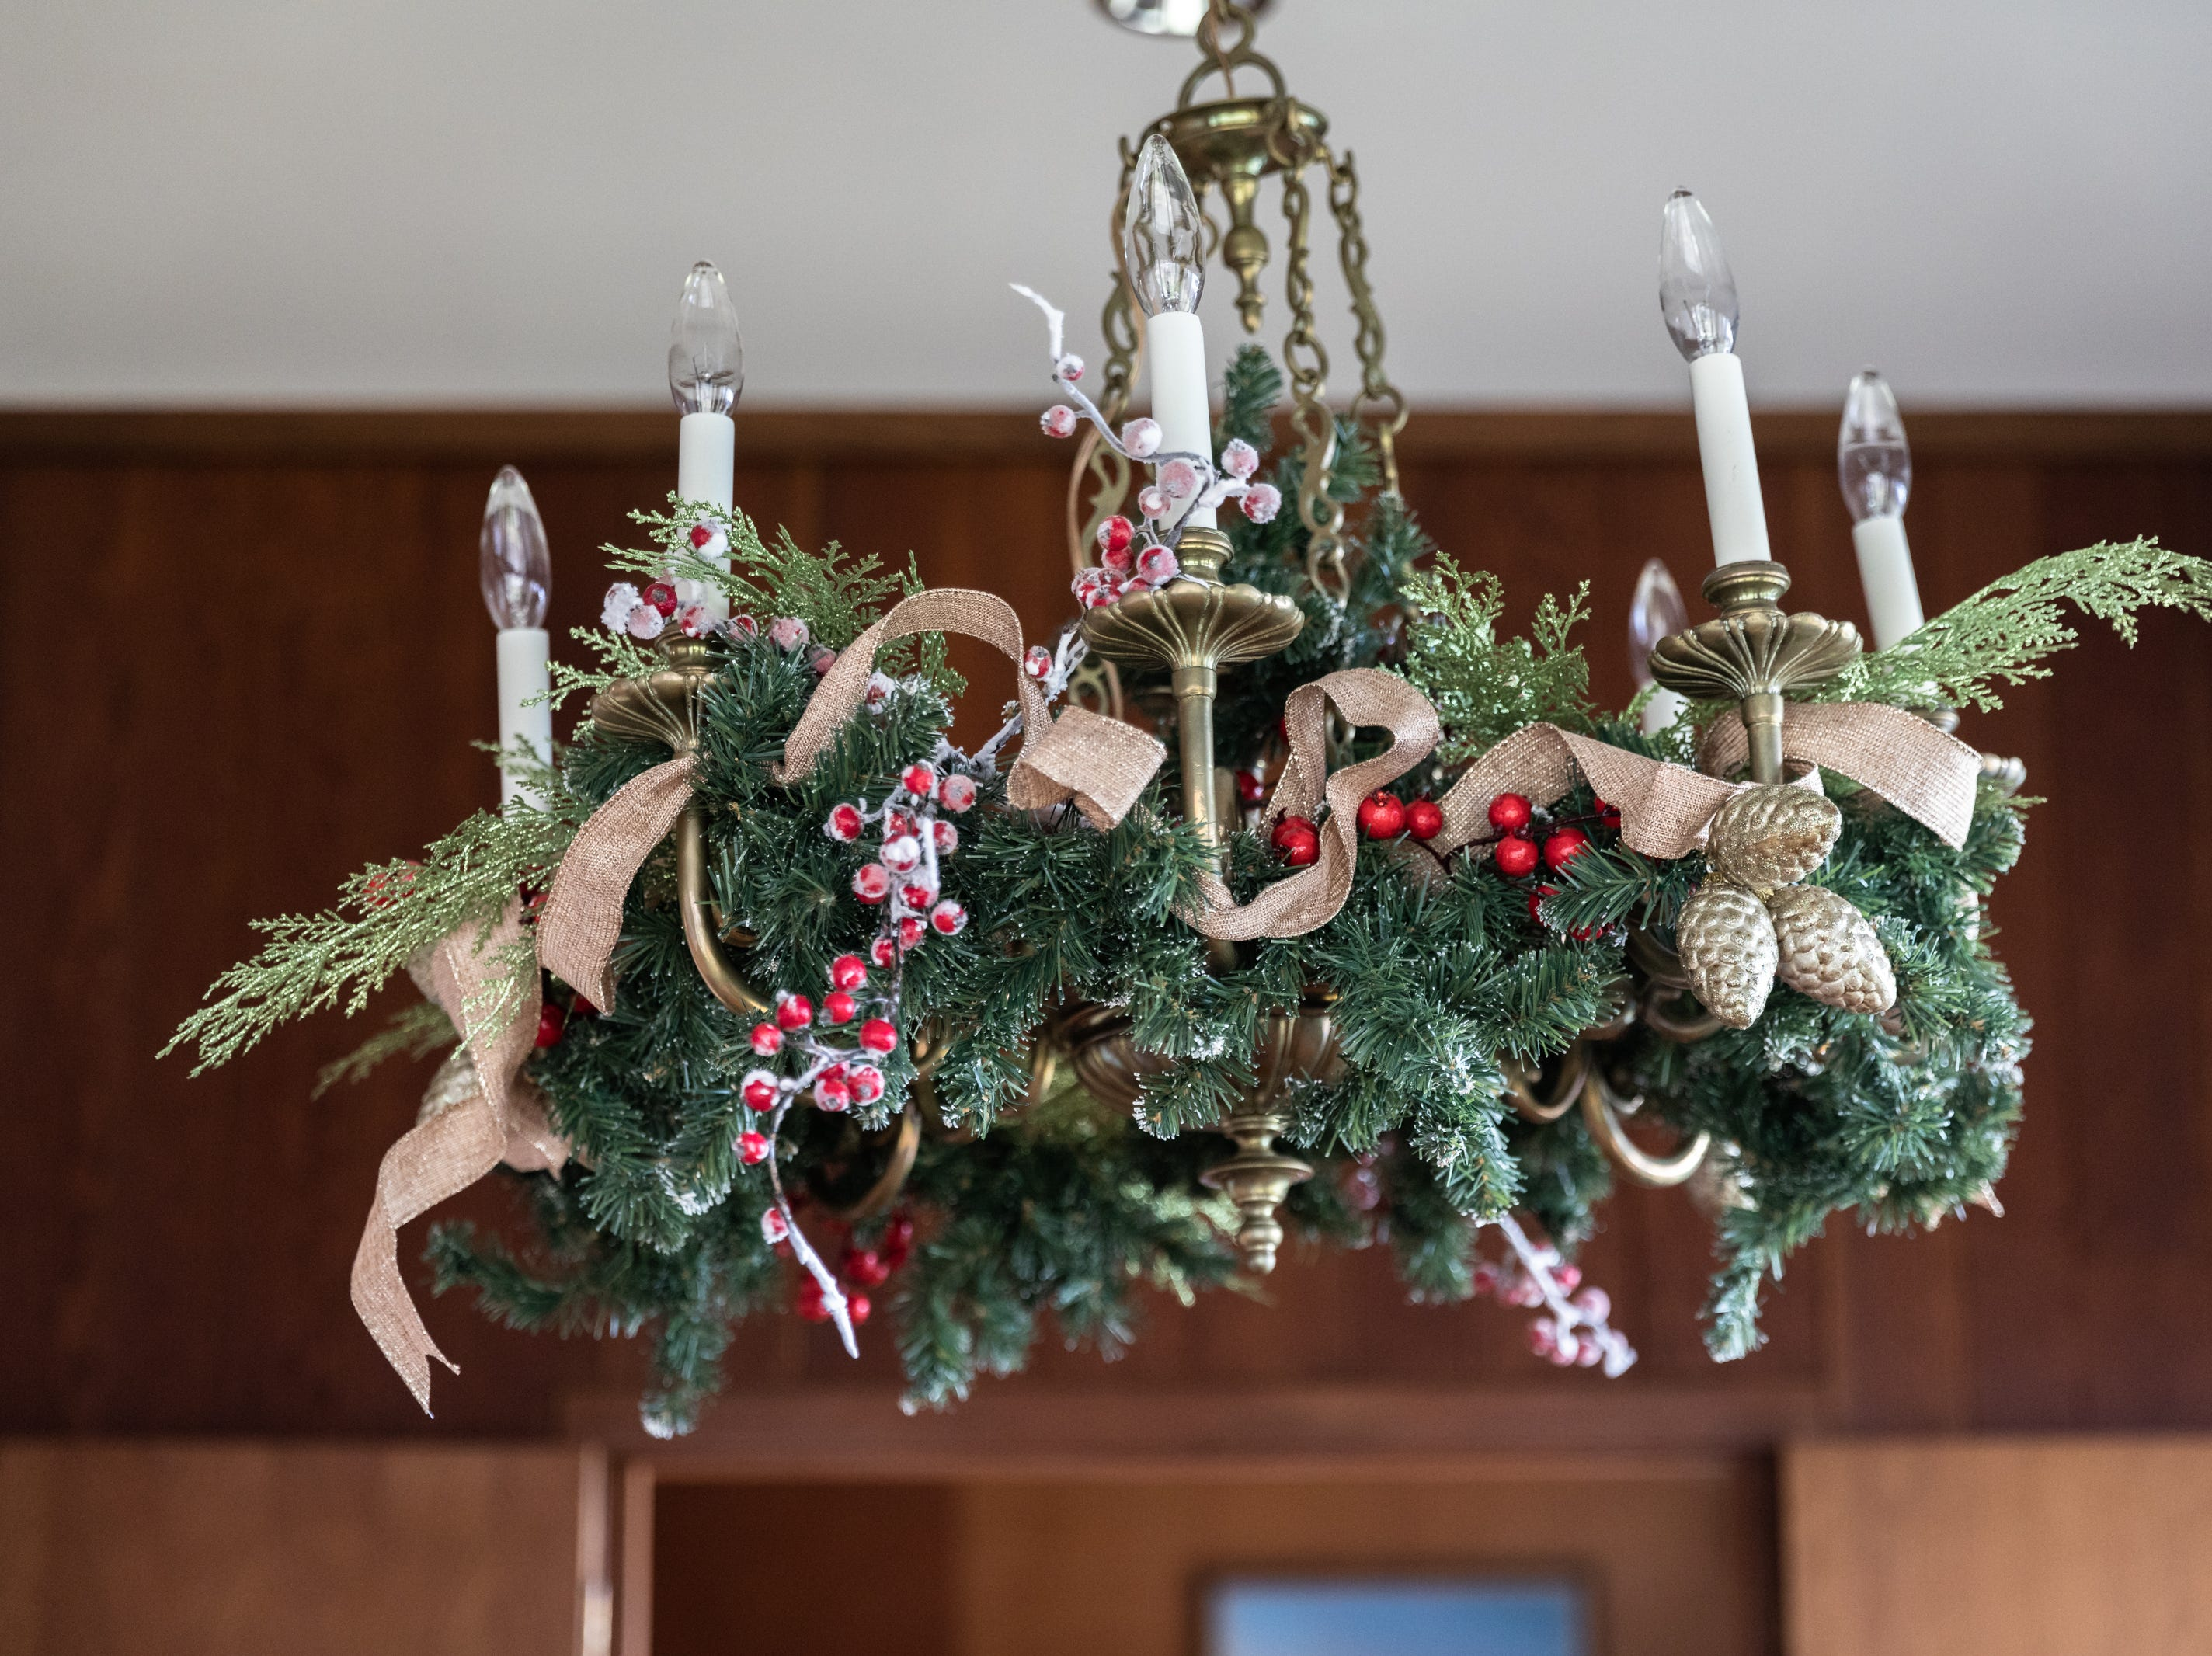 The chandelier in the dining room of the Governor's Western Residence on Patton Mountain Road in Asheville, decorated for the holidays.